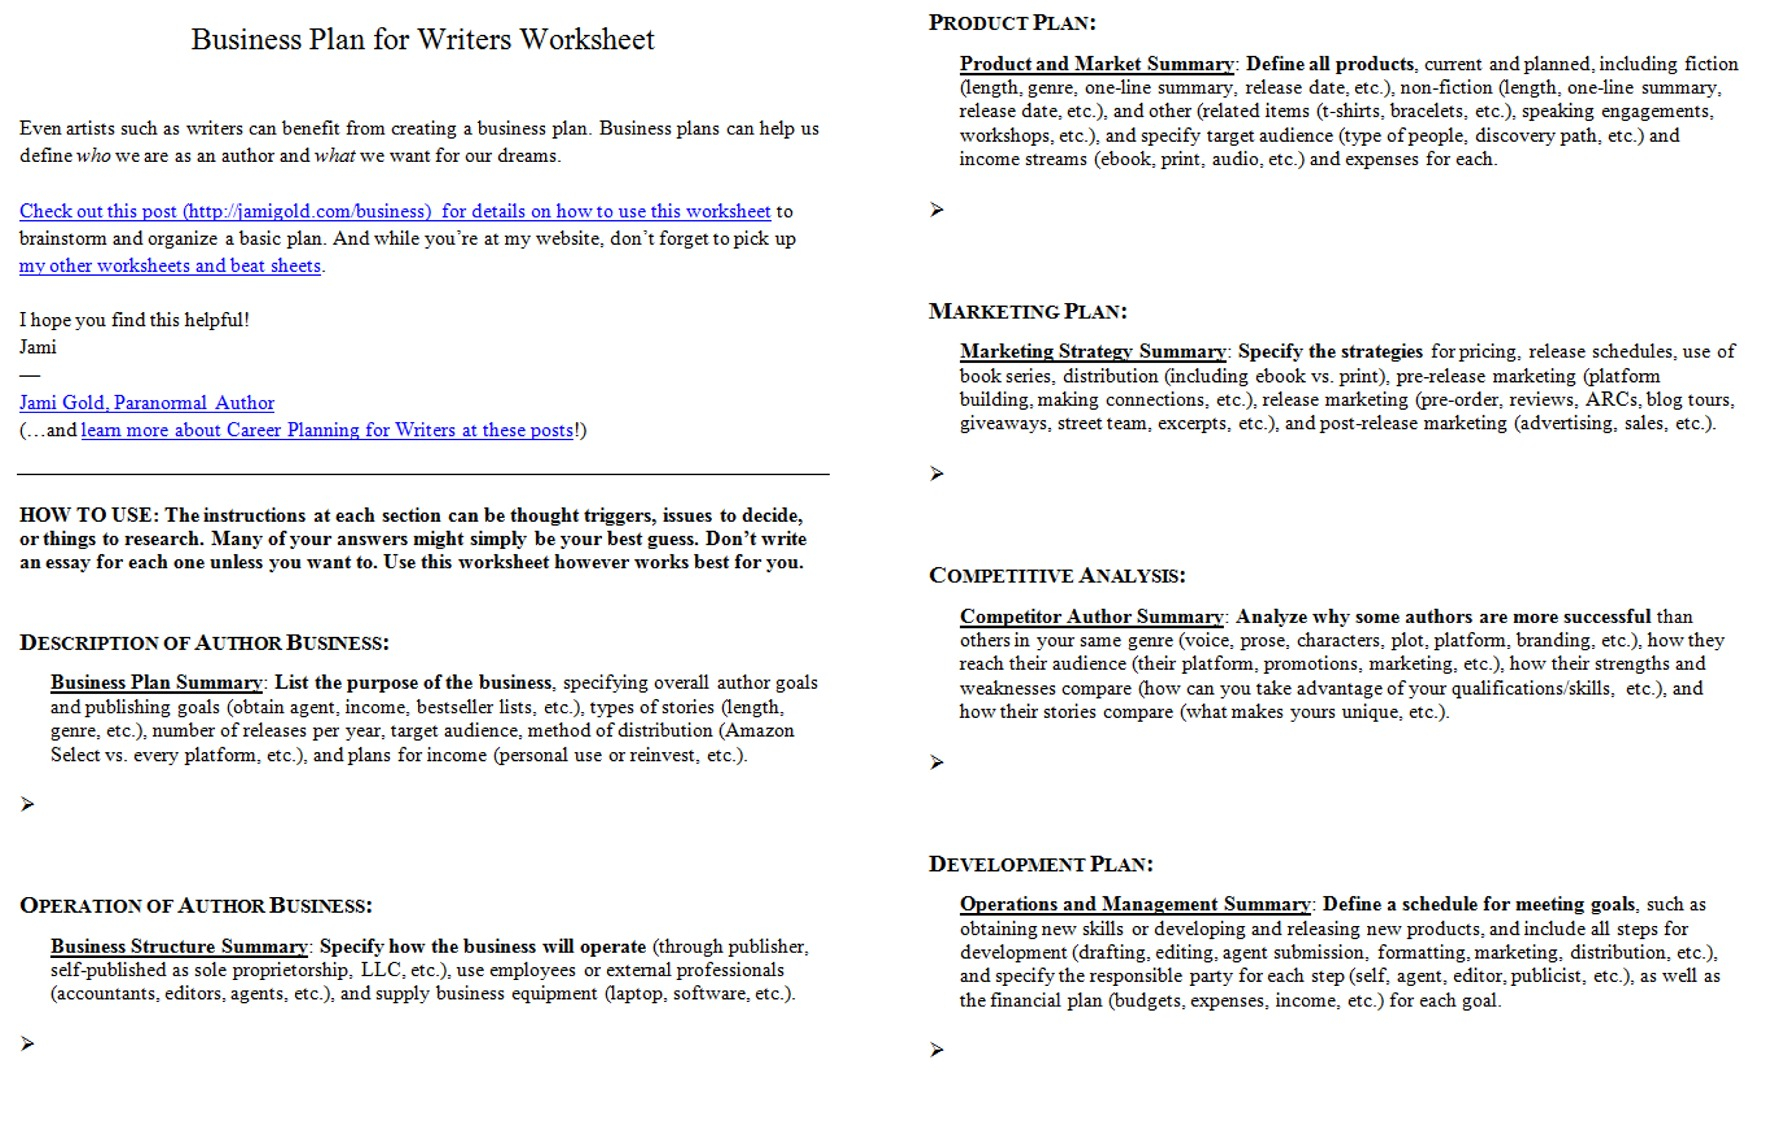 Aldiablosus  Splendid Worksheets For Writers  Jami Gold Paranormal Author With Exciting Screen Shot Of Both Pages Of The Business Plan For Writers Worksheet With Lovely Mole Problems Worksheet With Answers Also Fractions Addition Worksheets In Addition Paragraph Outline Worksheet And Color Cut Paste Worksheets As Well As Communication Merit Badge Worksheet Answers Additionally Solving Radical Equations Worksheets From Jamigoldcom With Aldiablosus  Exciting Worksheets For Writers  Jami Gold Paranormal Author With Lovely Screen Shot Of Both Pages Of The Business Plan For Writers Worksheet And Splendid Mole Problems Worksheet With Answers Also Fractions Addition Worksheets In Addition Paragraph Outline Worksheet From Jamigoldcom